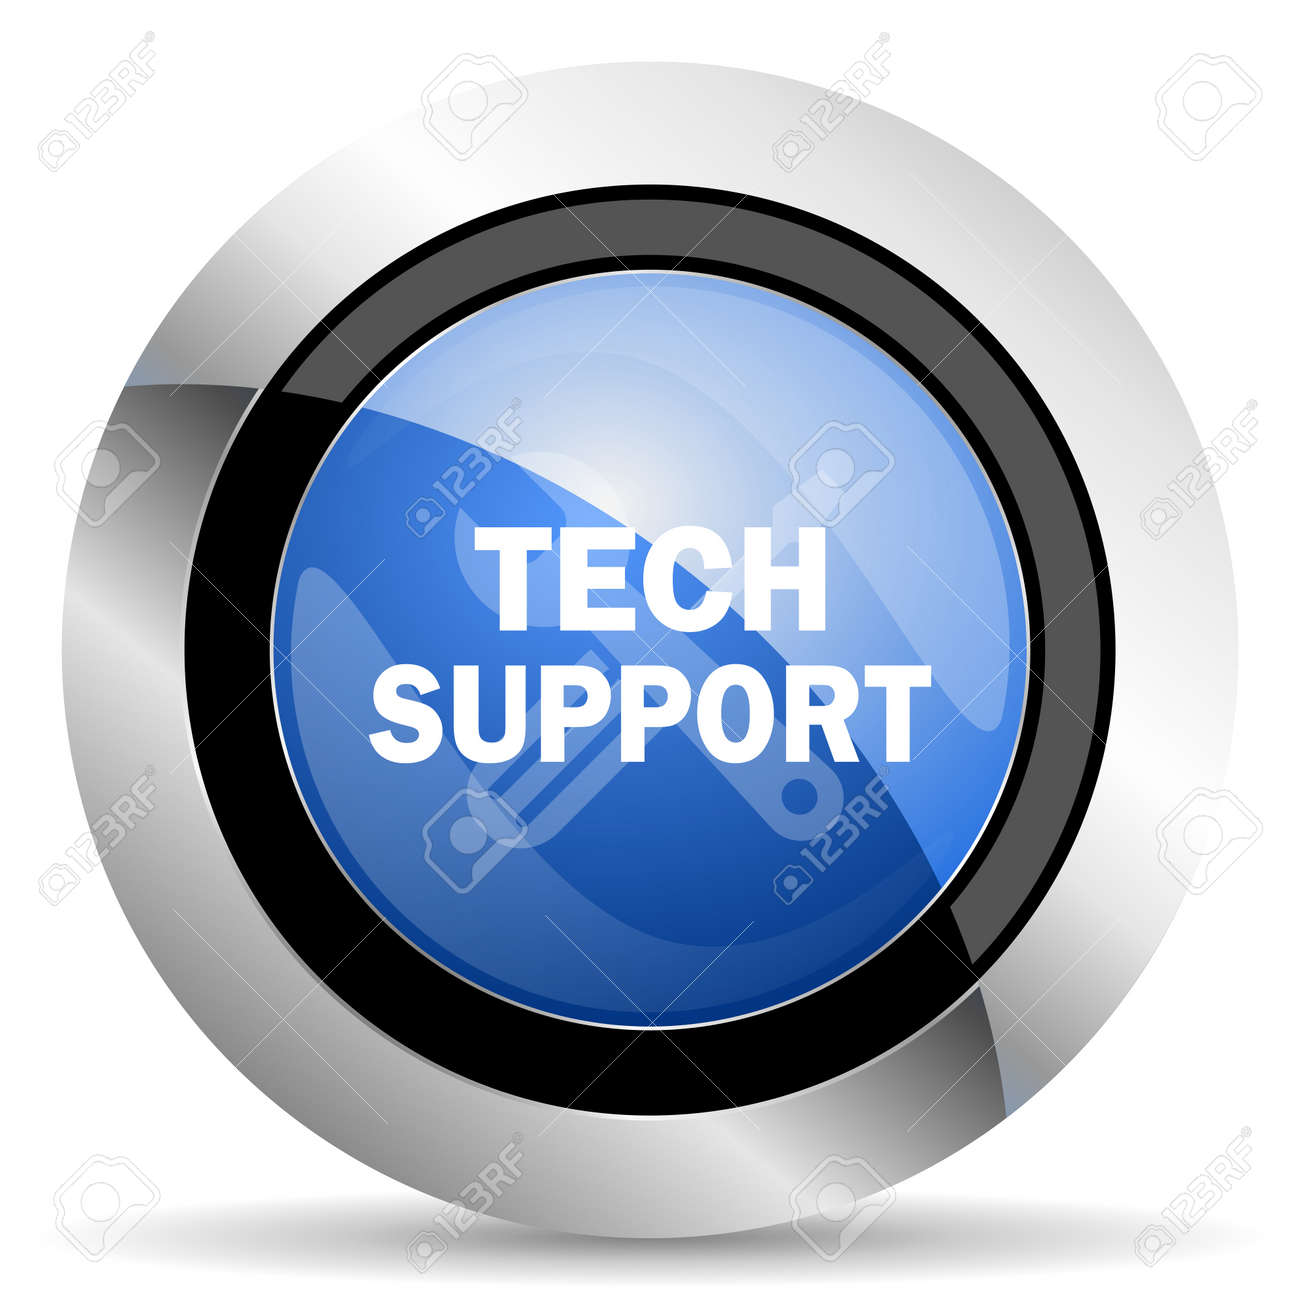 Technical Support Icon Stock Photo, Picture And Royalty Free Image ...